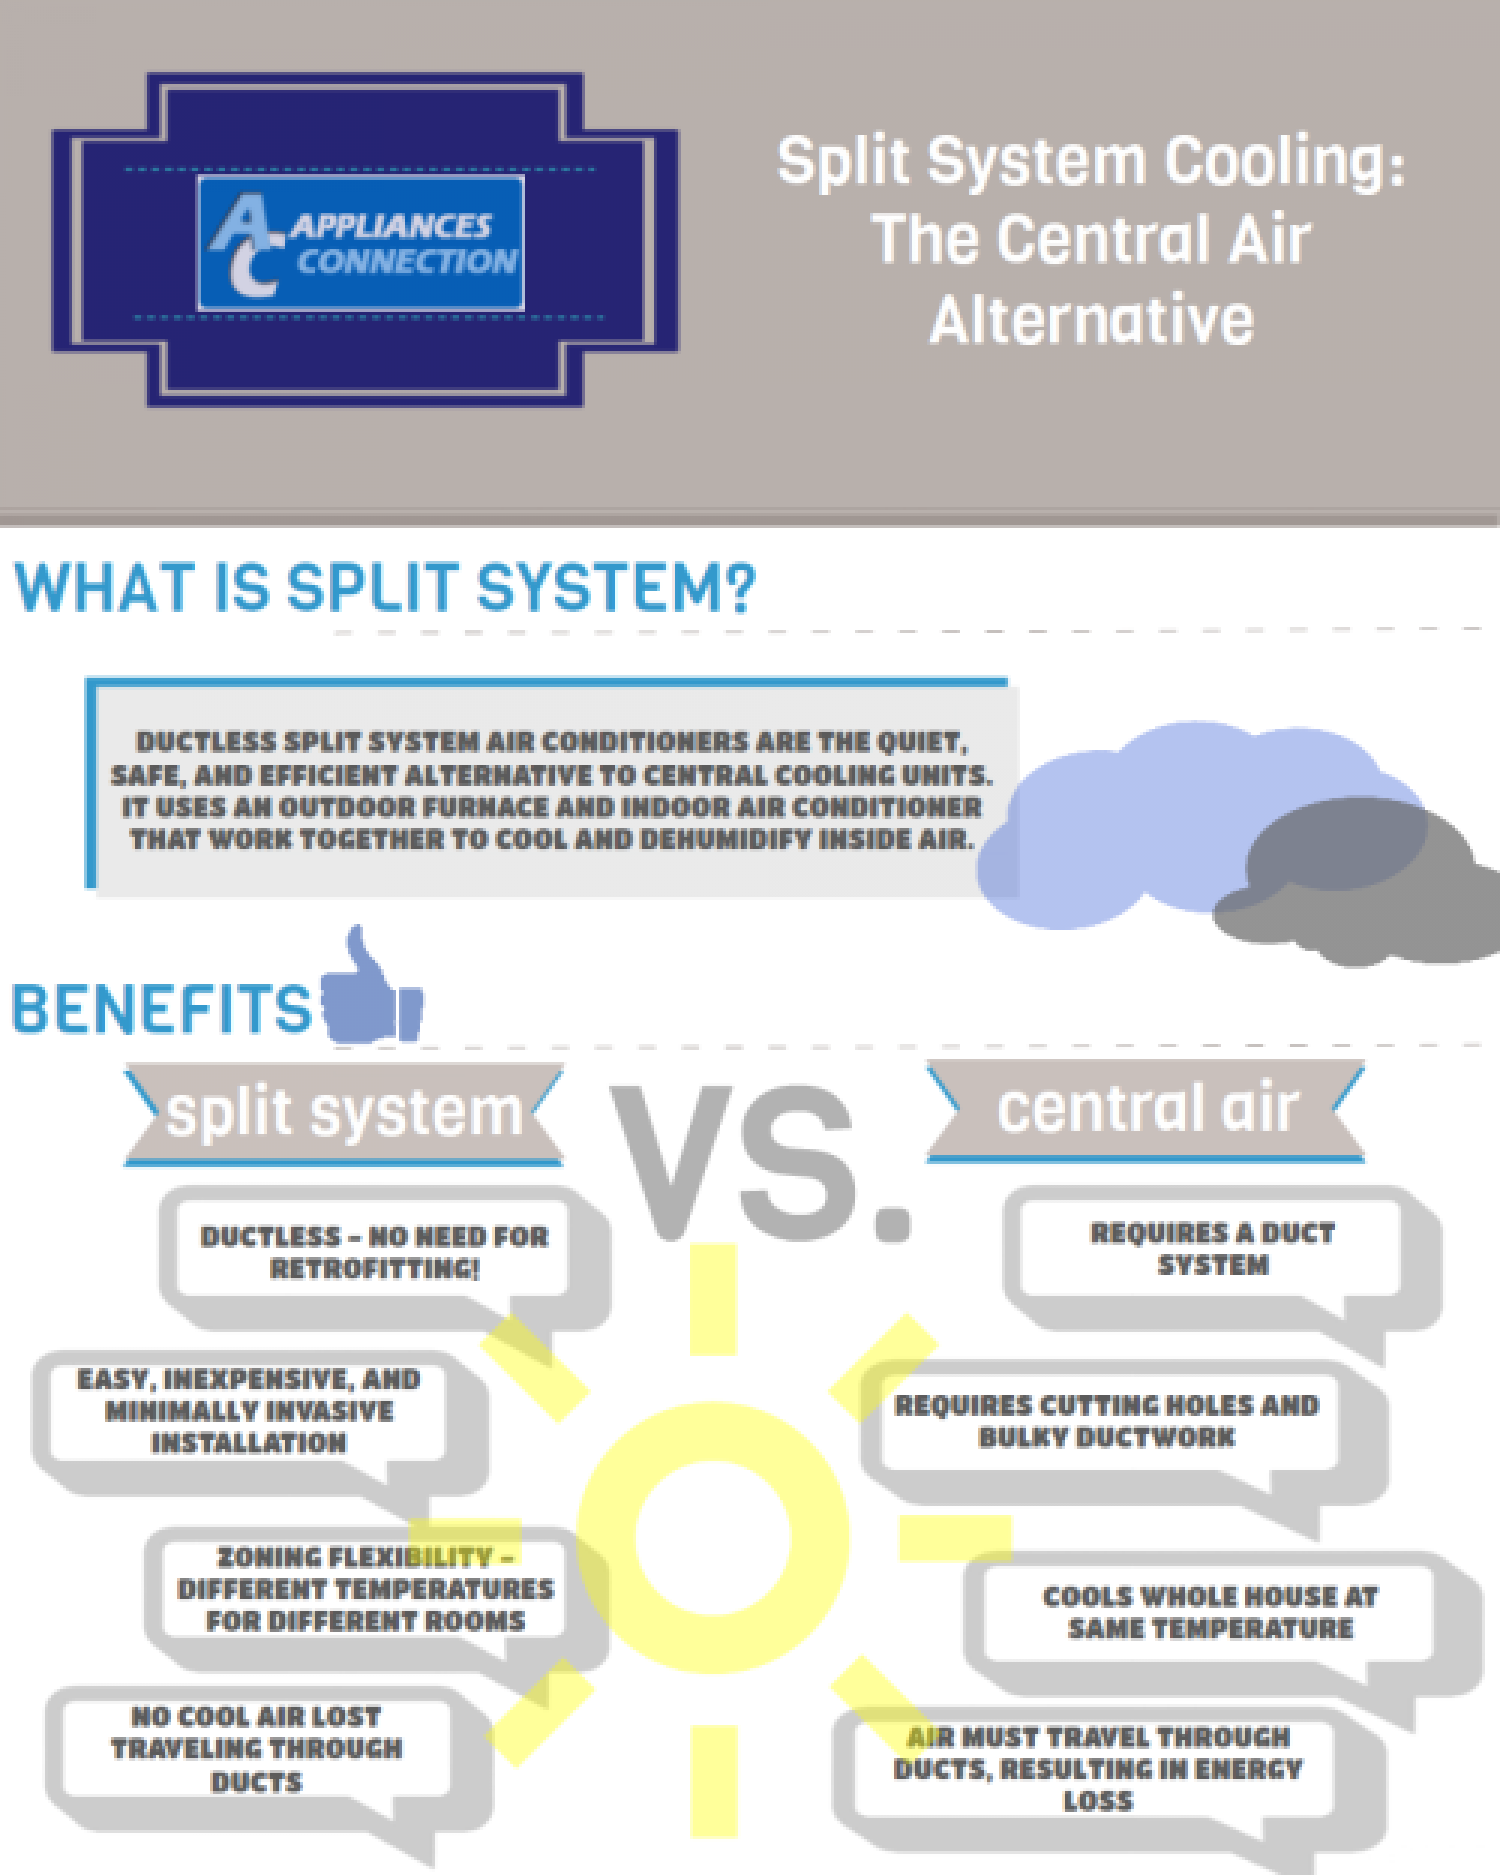 Split System Cooling: The Central Air Alternative Infographic